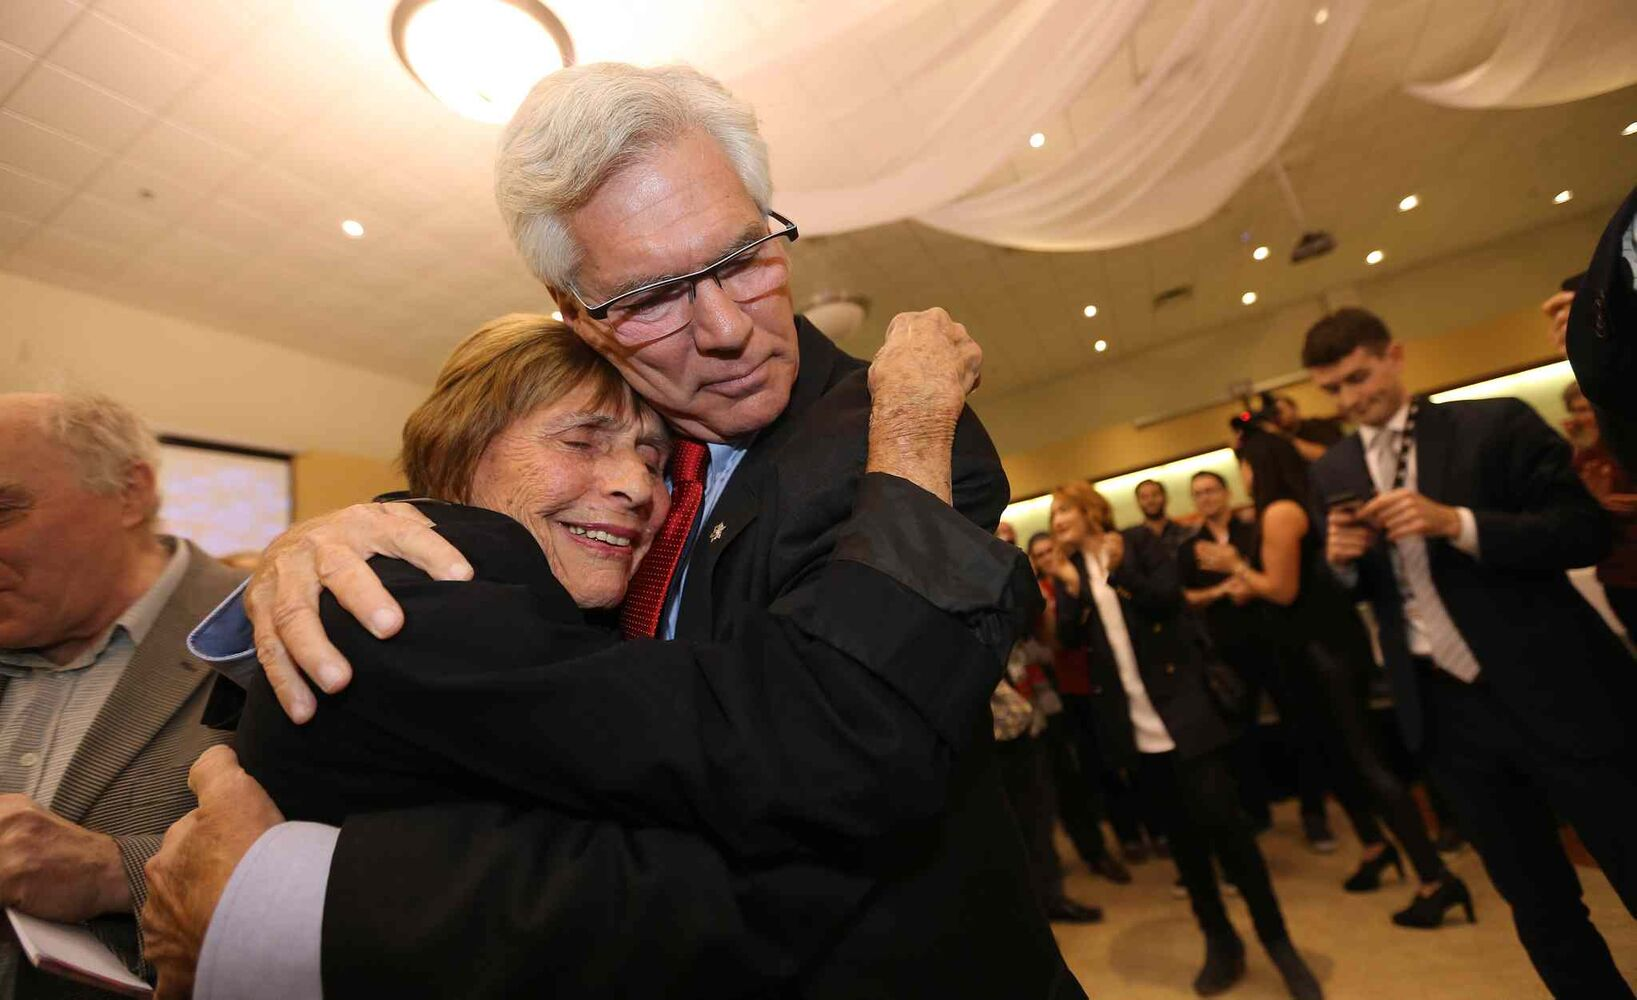 Jim Carr embraces his aunt, Frances Miles at his election victory party at the Caboto Centre, Monday, October 19, 2015. (TREVOR HAGAN/WINNIPEG FREE PRESS)